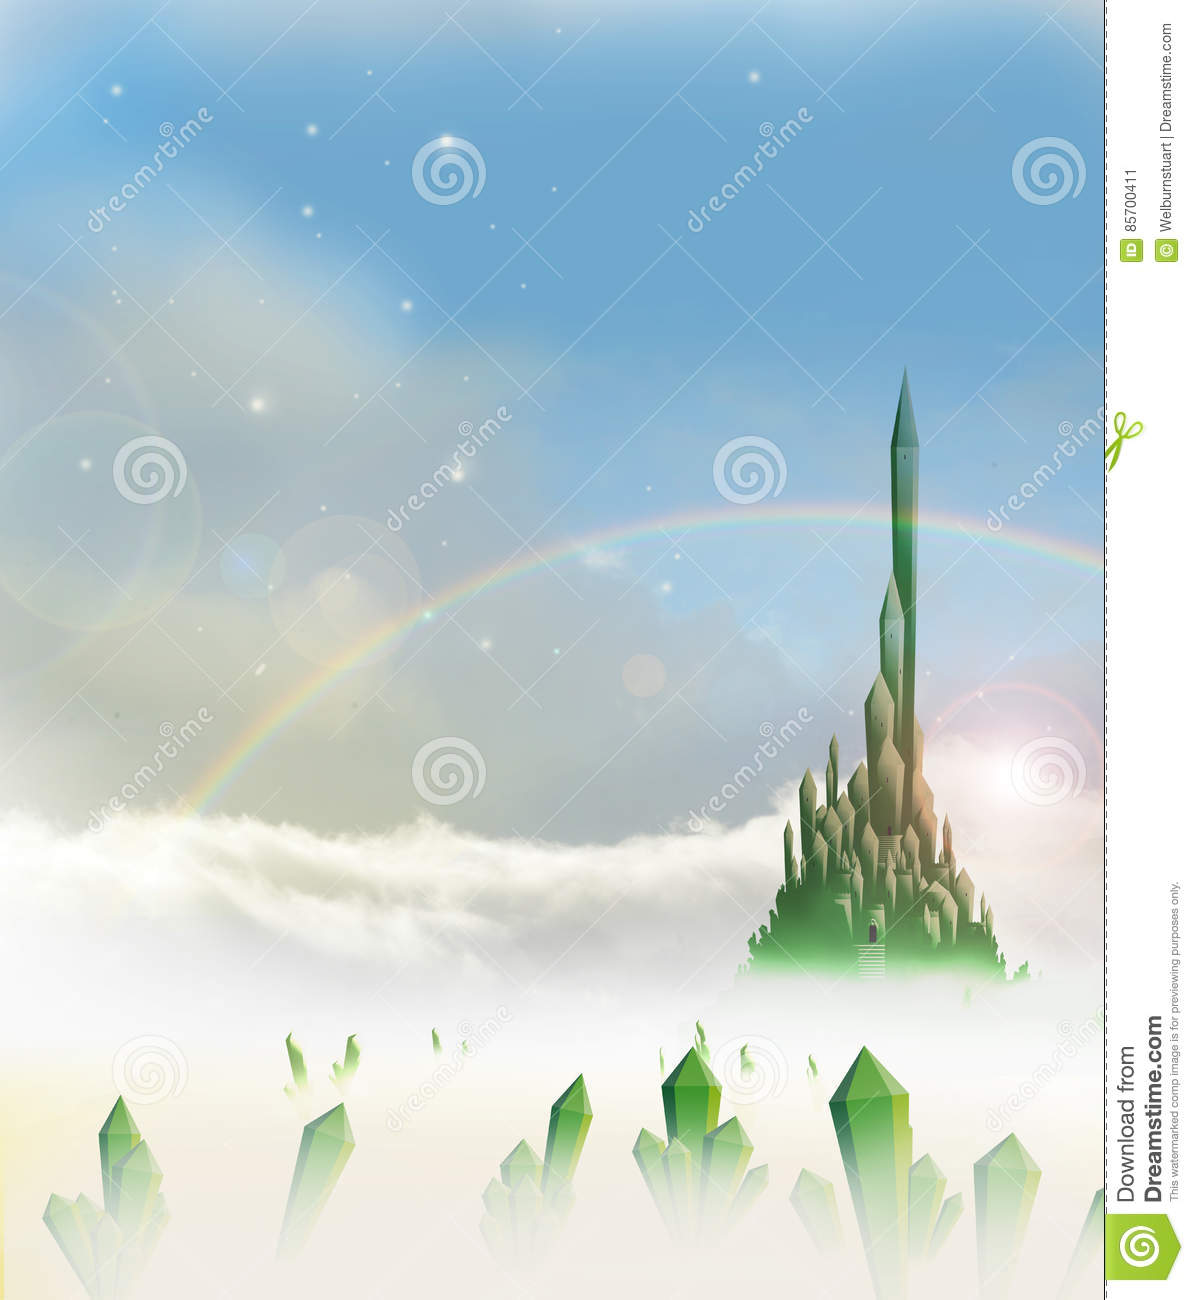 Dorothy cartoons illustrations vector stock images 37 for Emerald city nickname